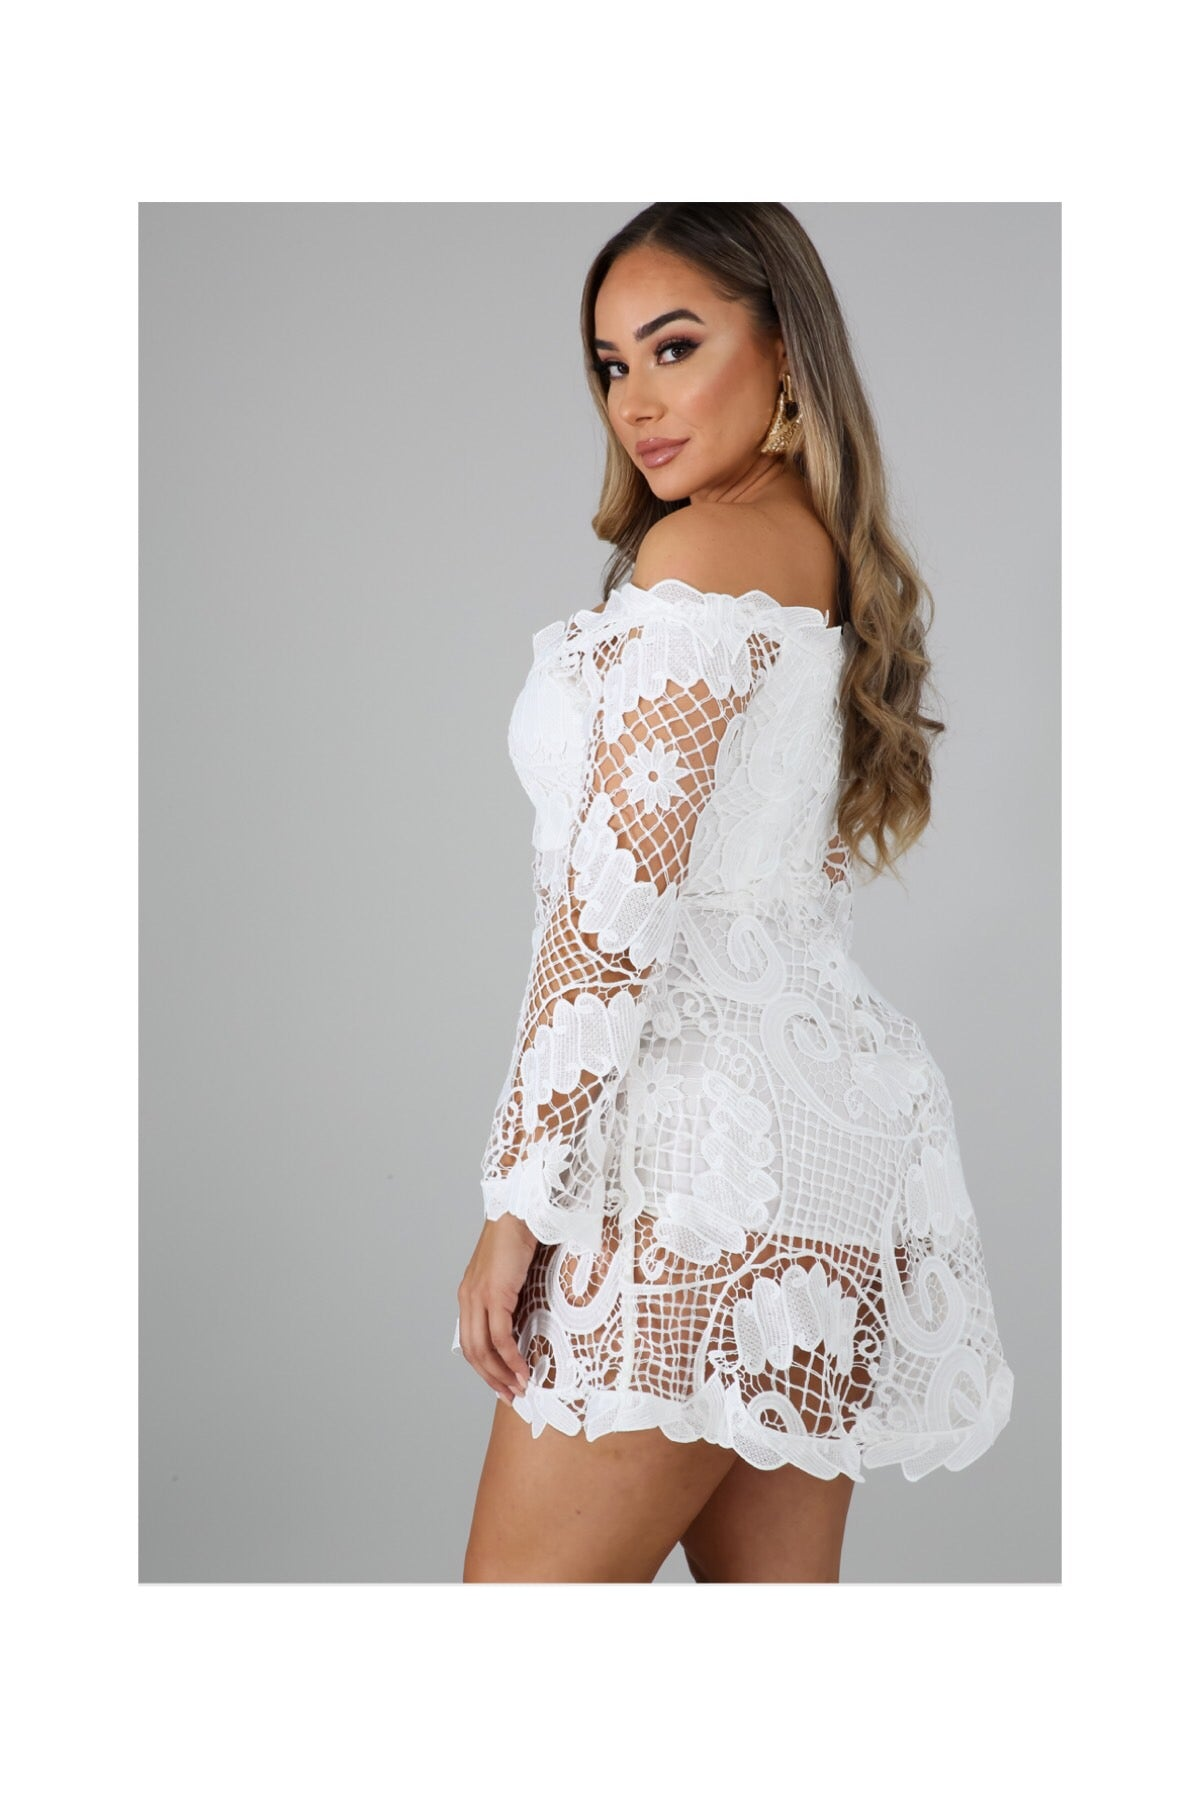 The DAINTY CROCHET ROMPER